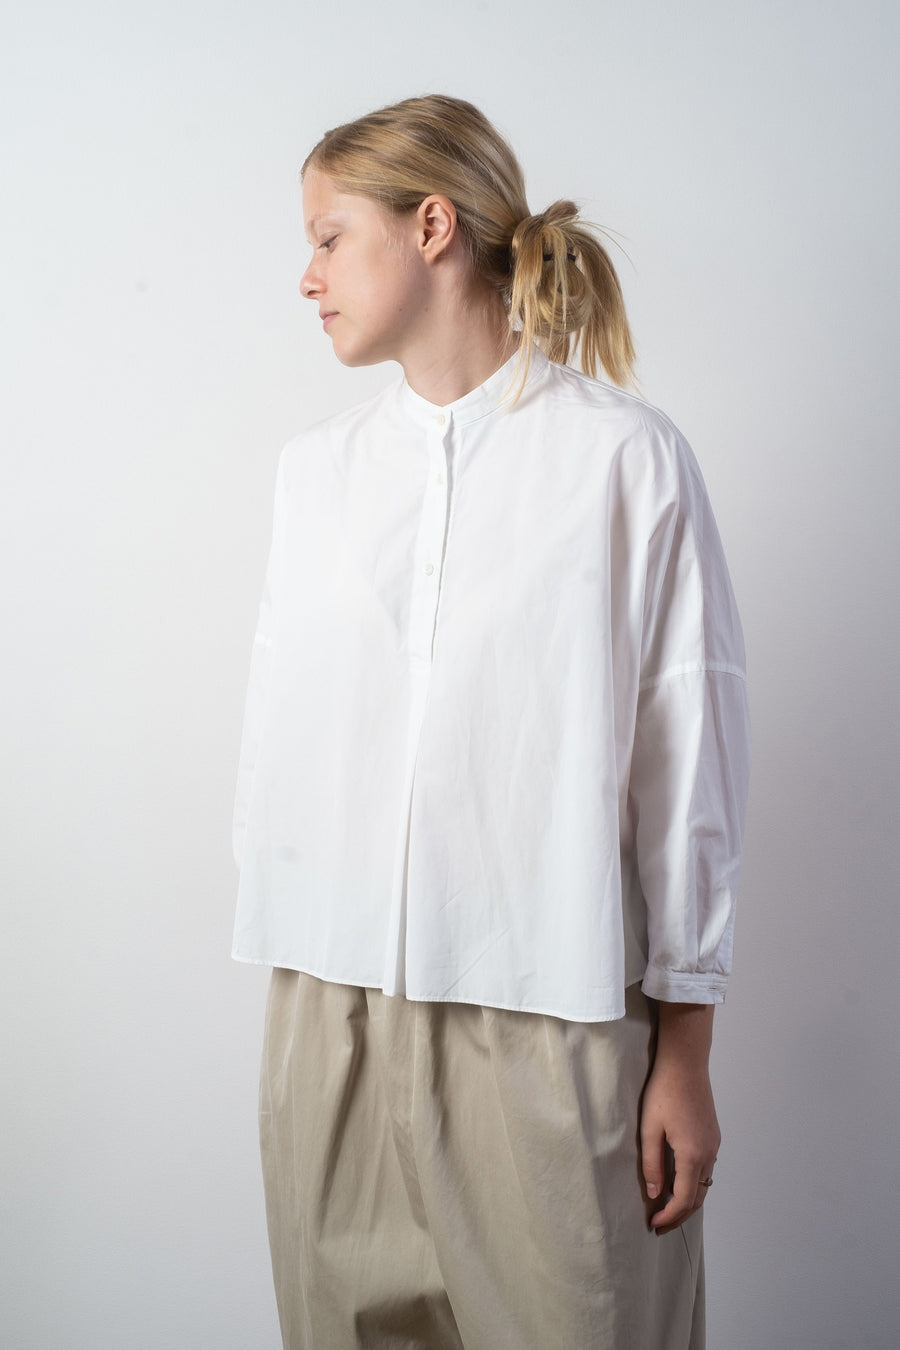 arts & science women's slip on swing shirt in white | noodle stories